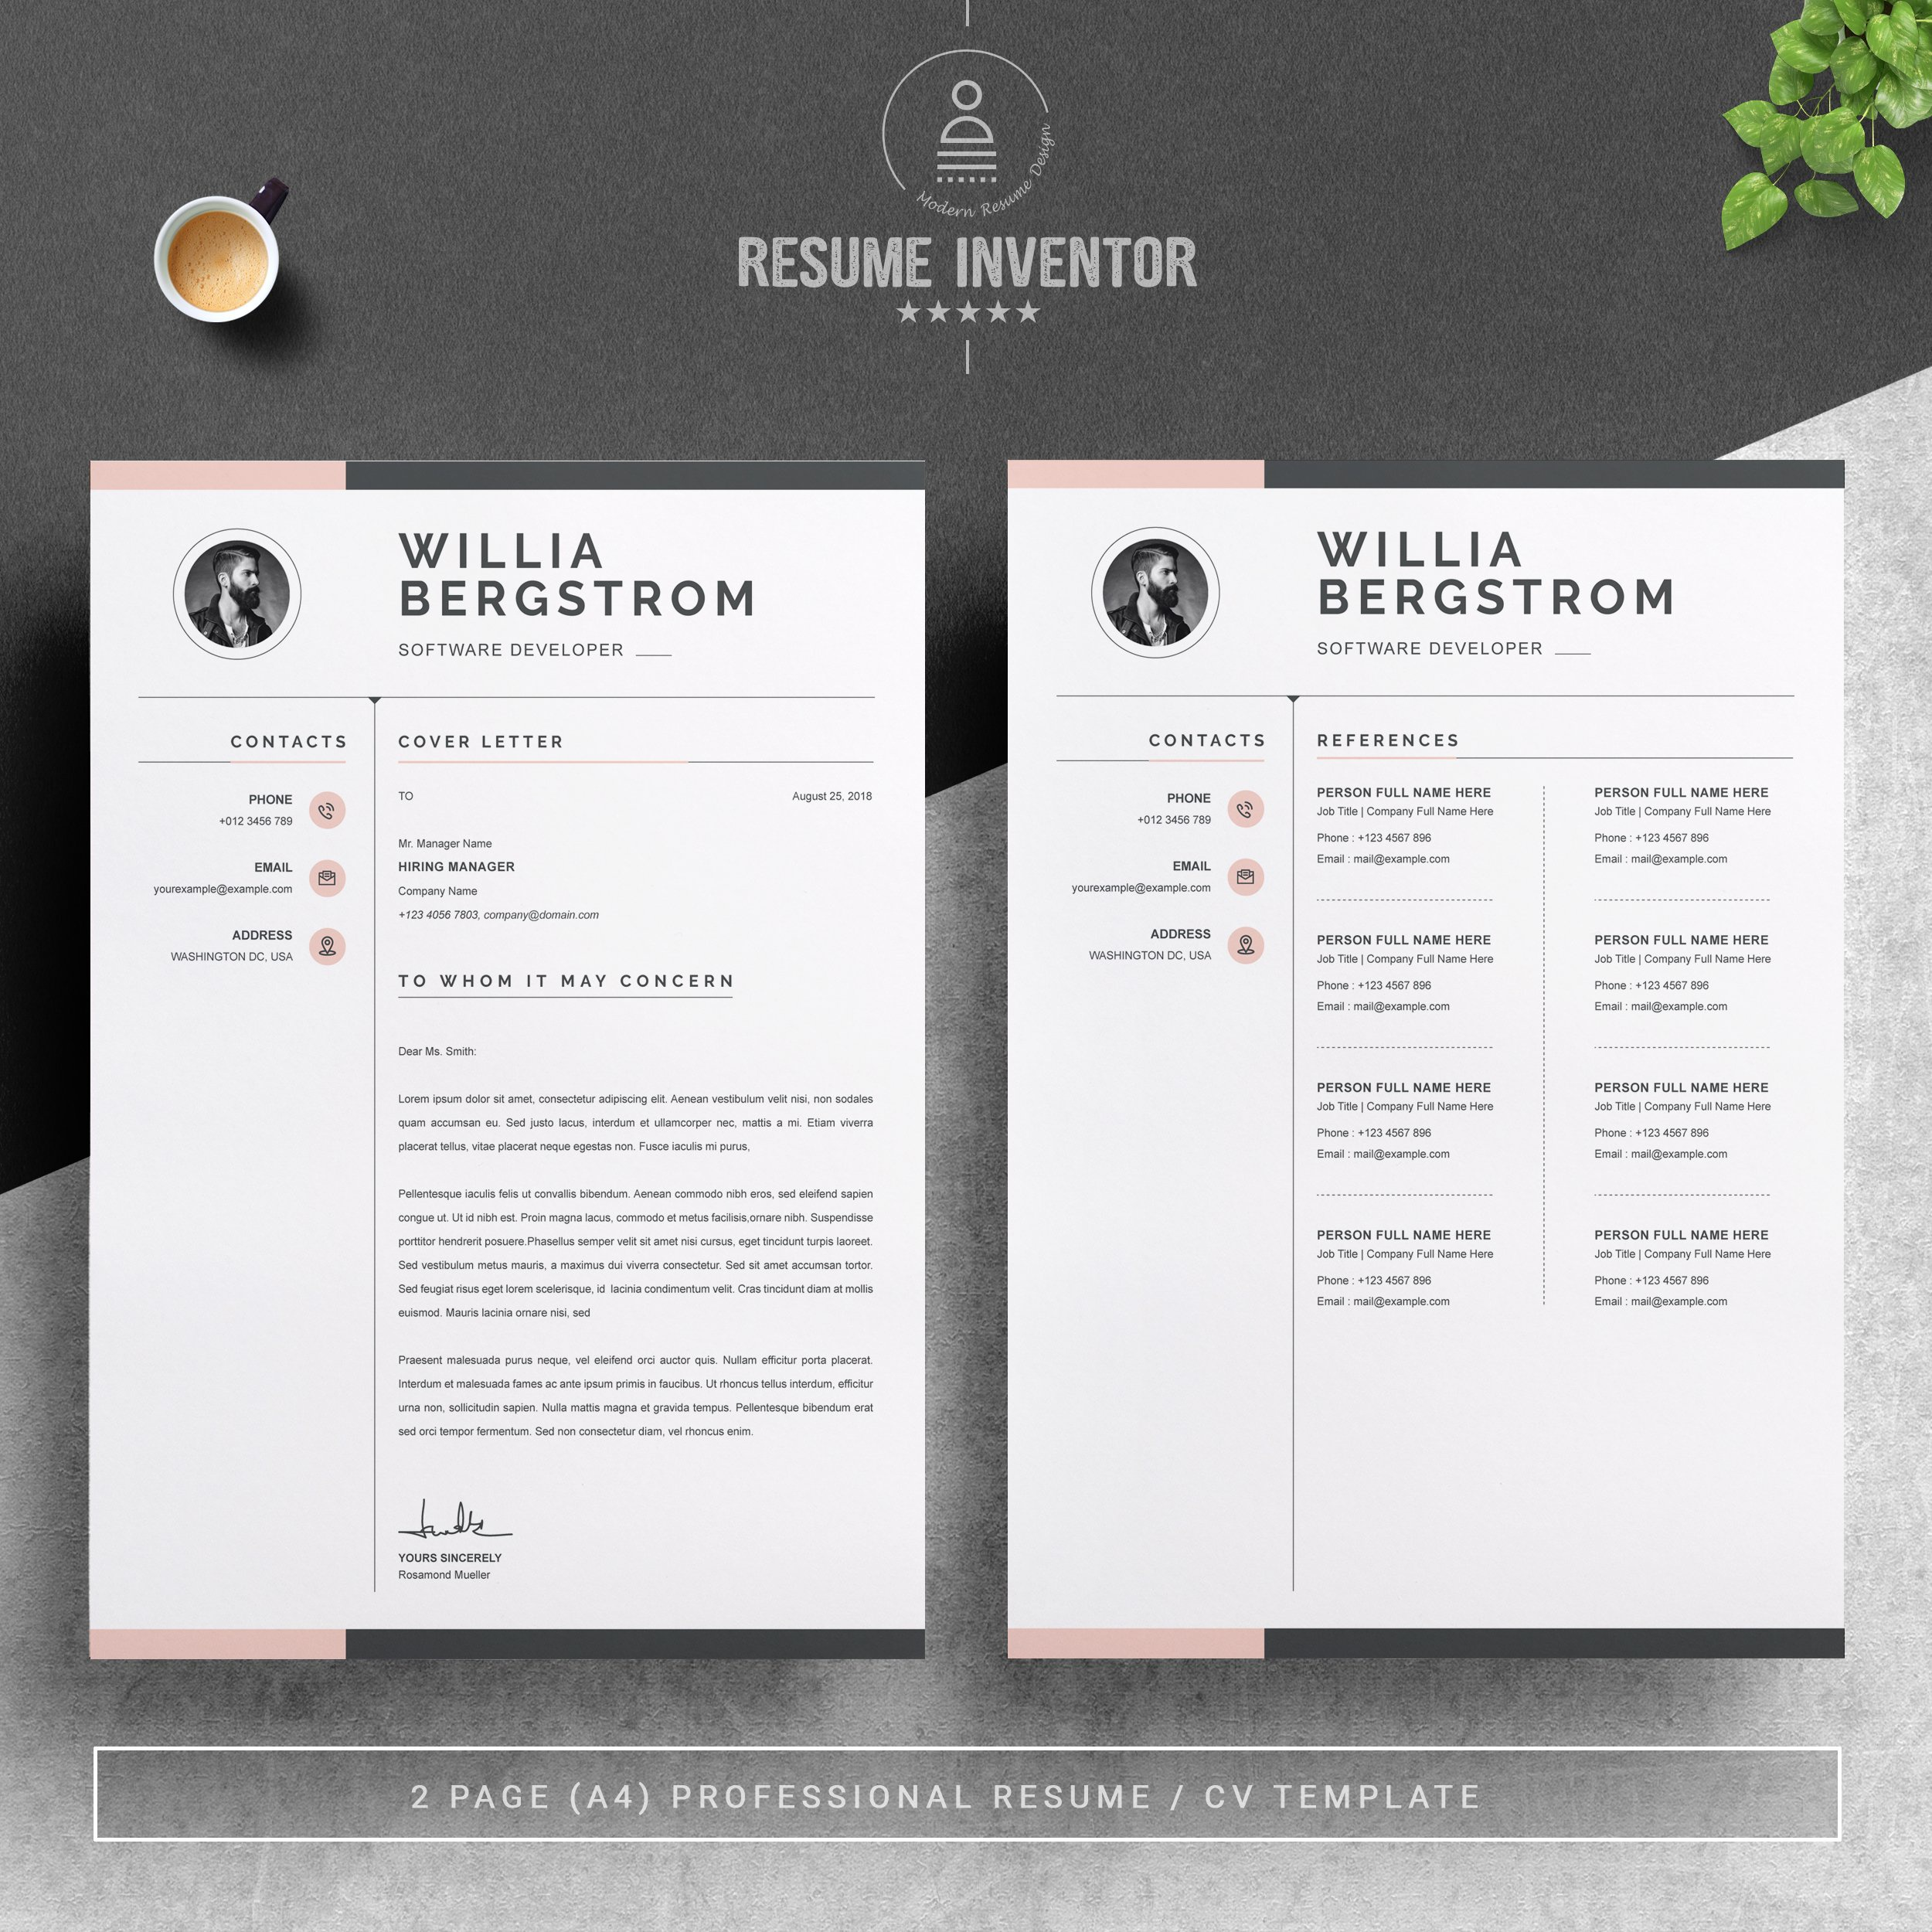 Dribbble - 03_2-pages-free-resume-design-template-.jpg by ...